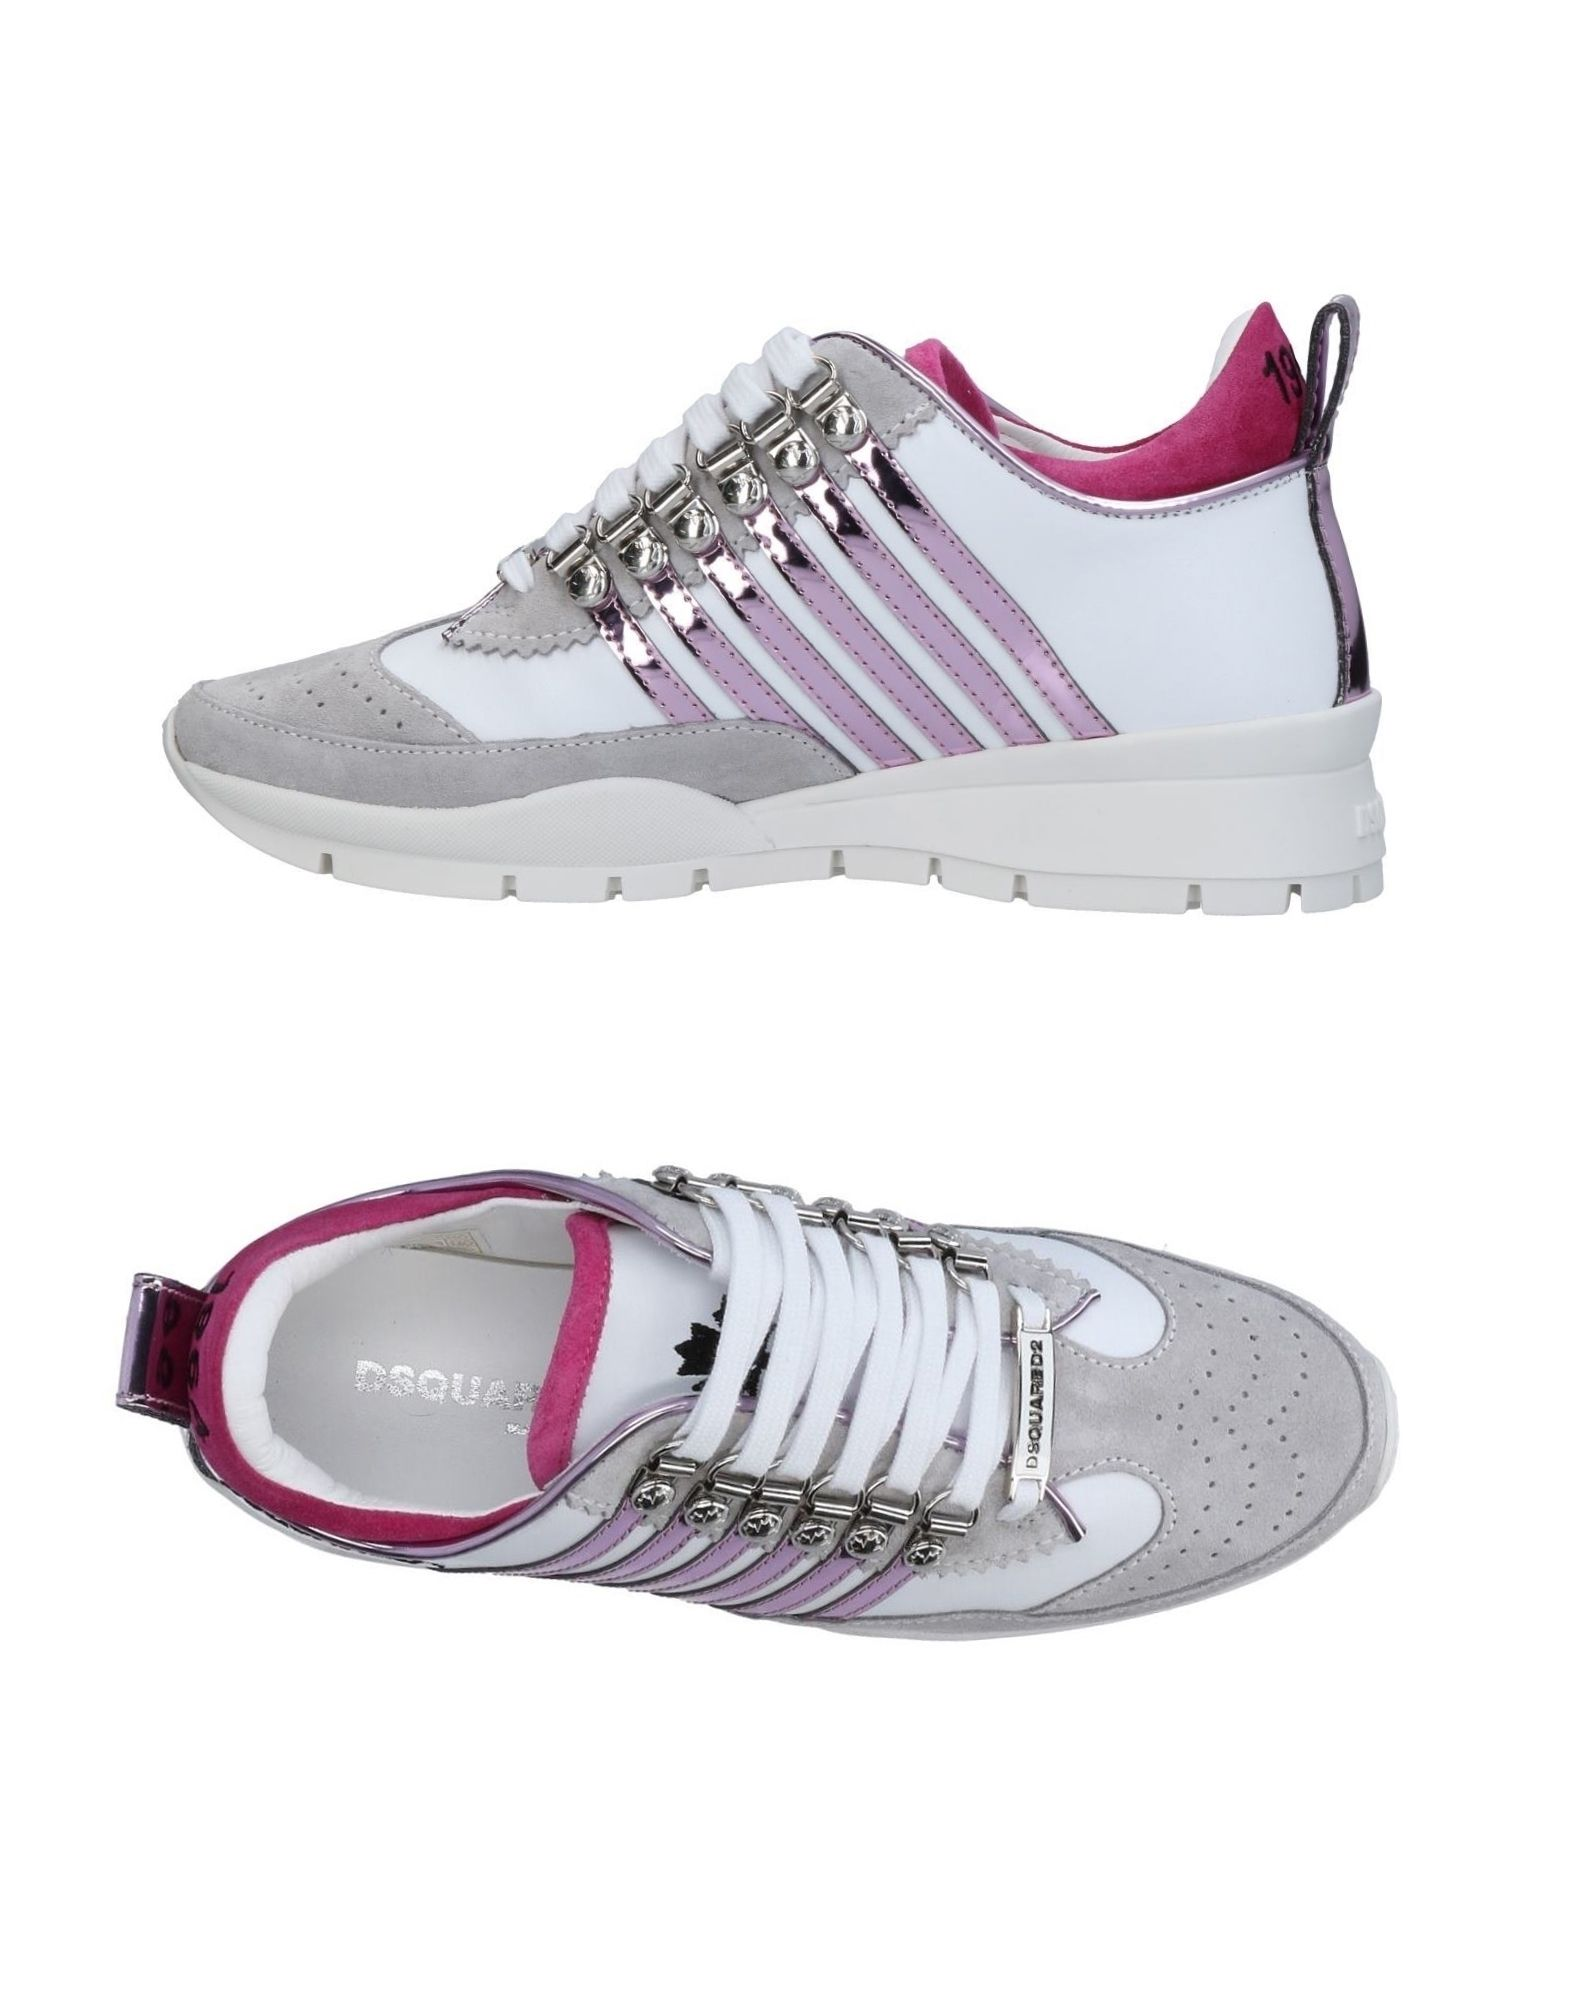 Dsquared2 Sneakers - Women Dsquared2 Sneakers - online on  Australia - Sneakers 11460223JO 8bd7ea